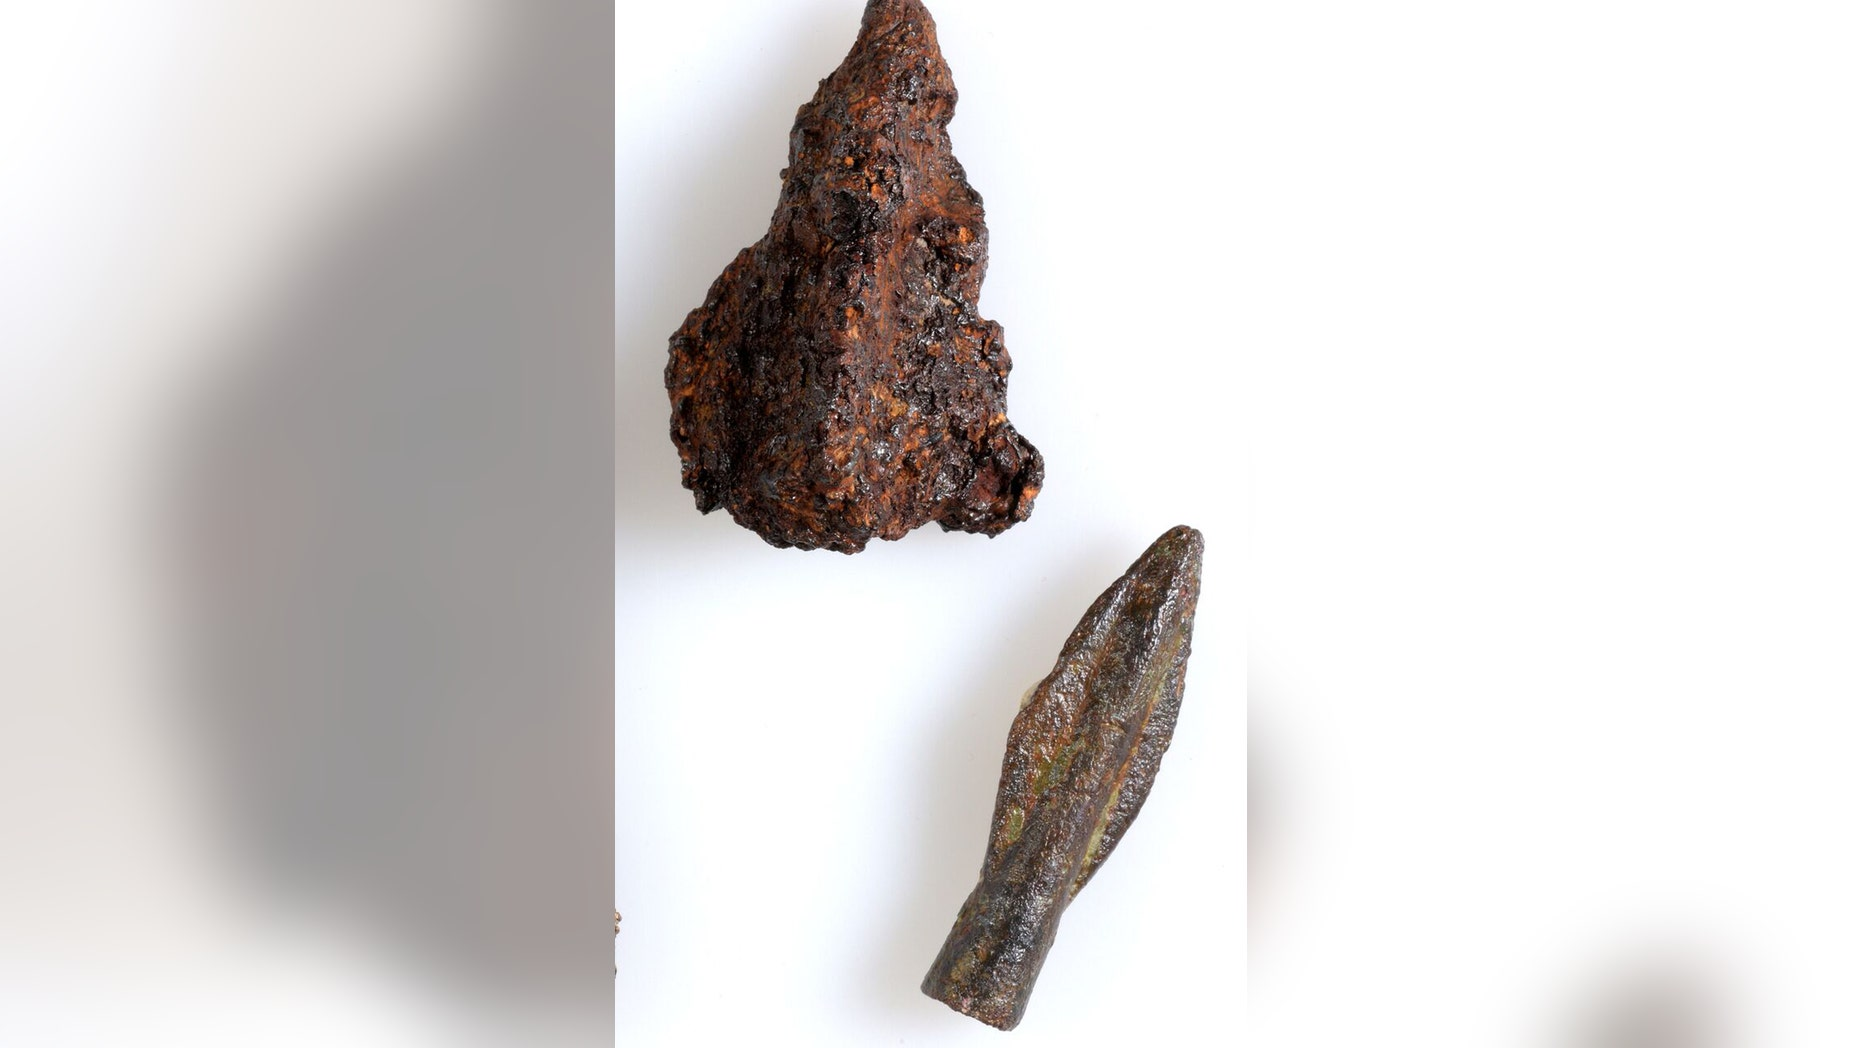 Arrowheads that were discovered in the excavation. Photo: Clara Amit, courtesy of the Israel Antiquities Authority.